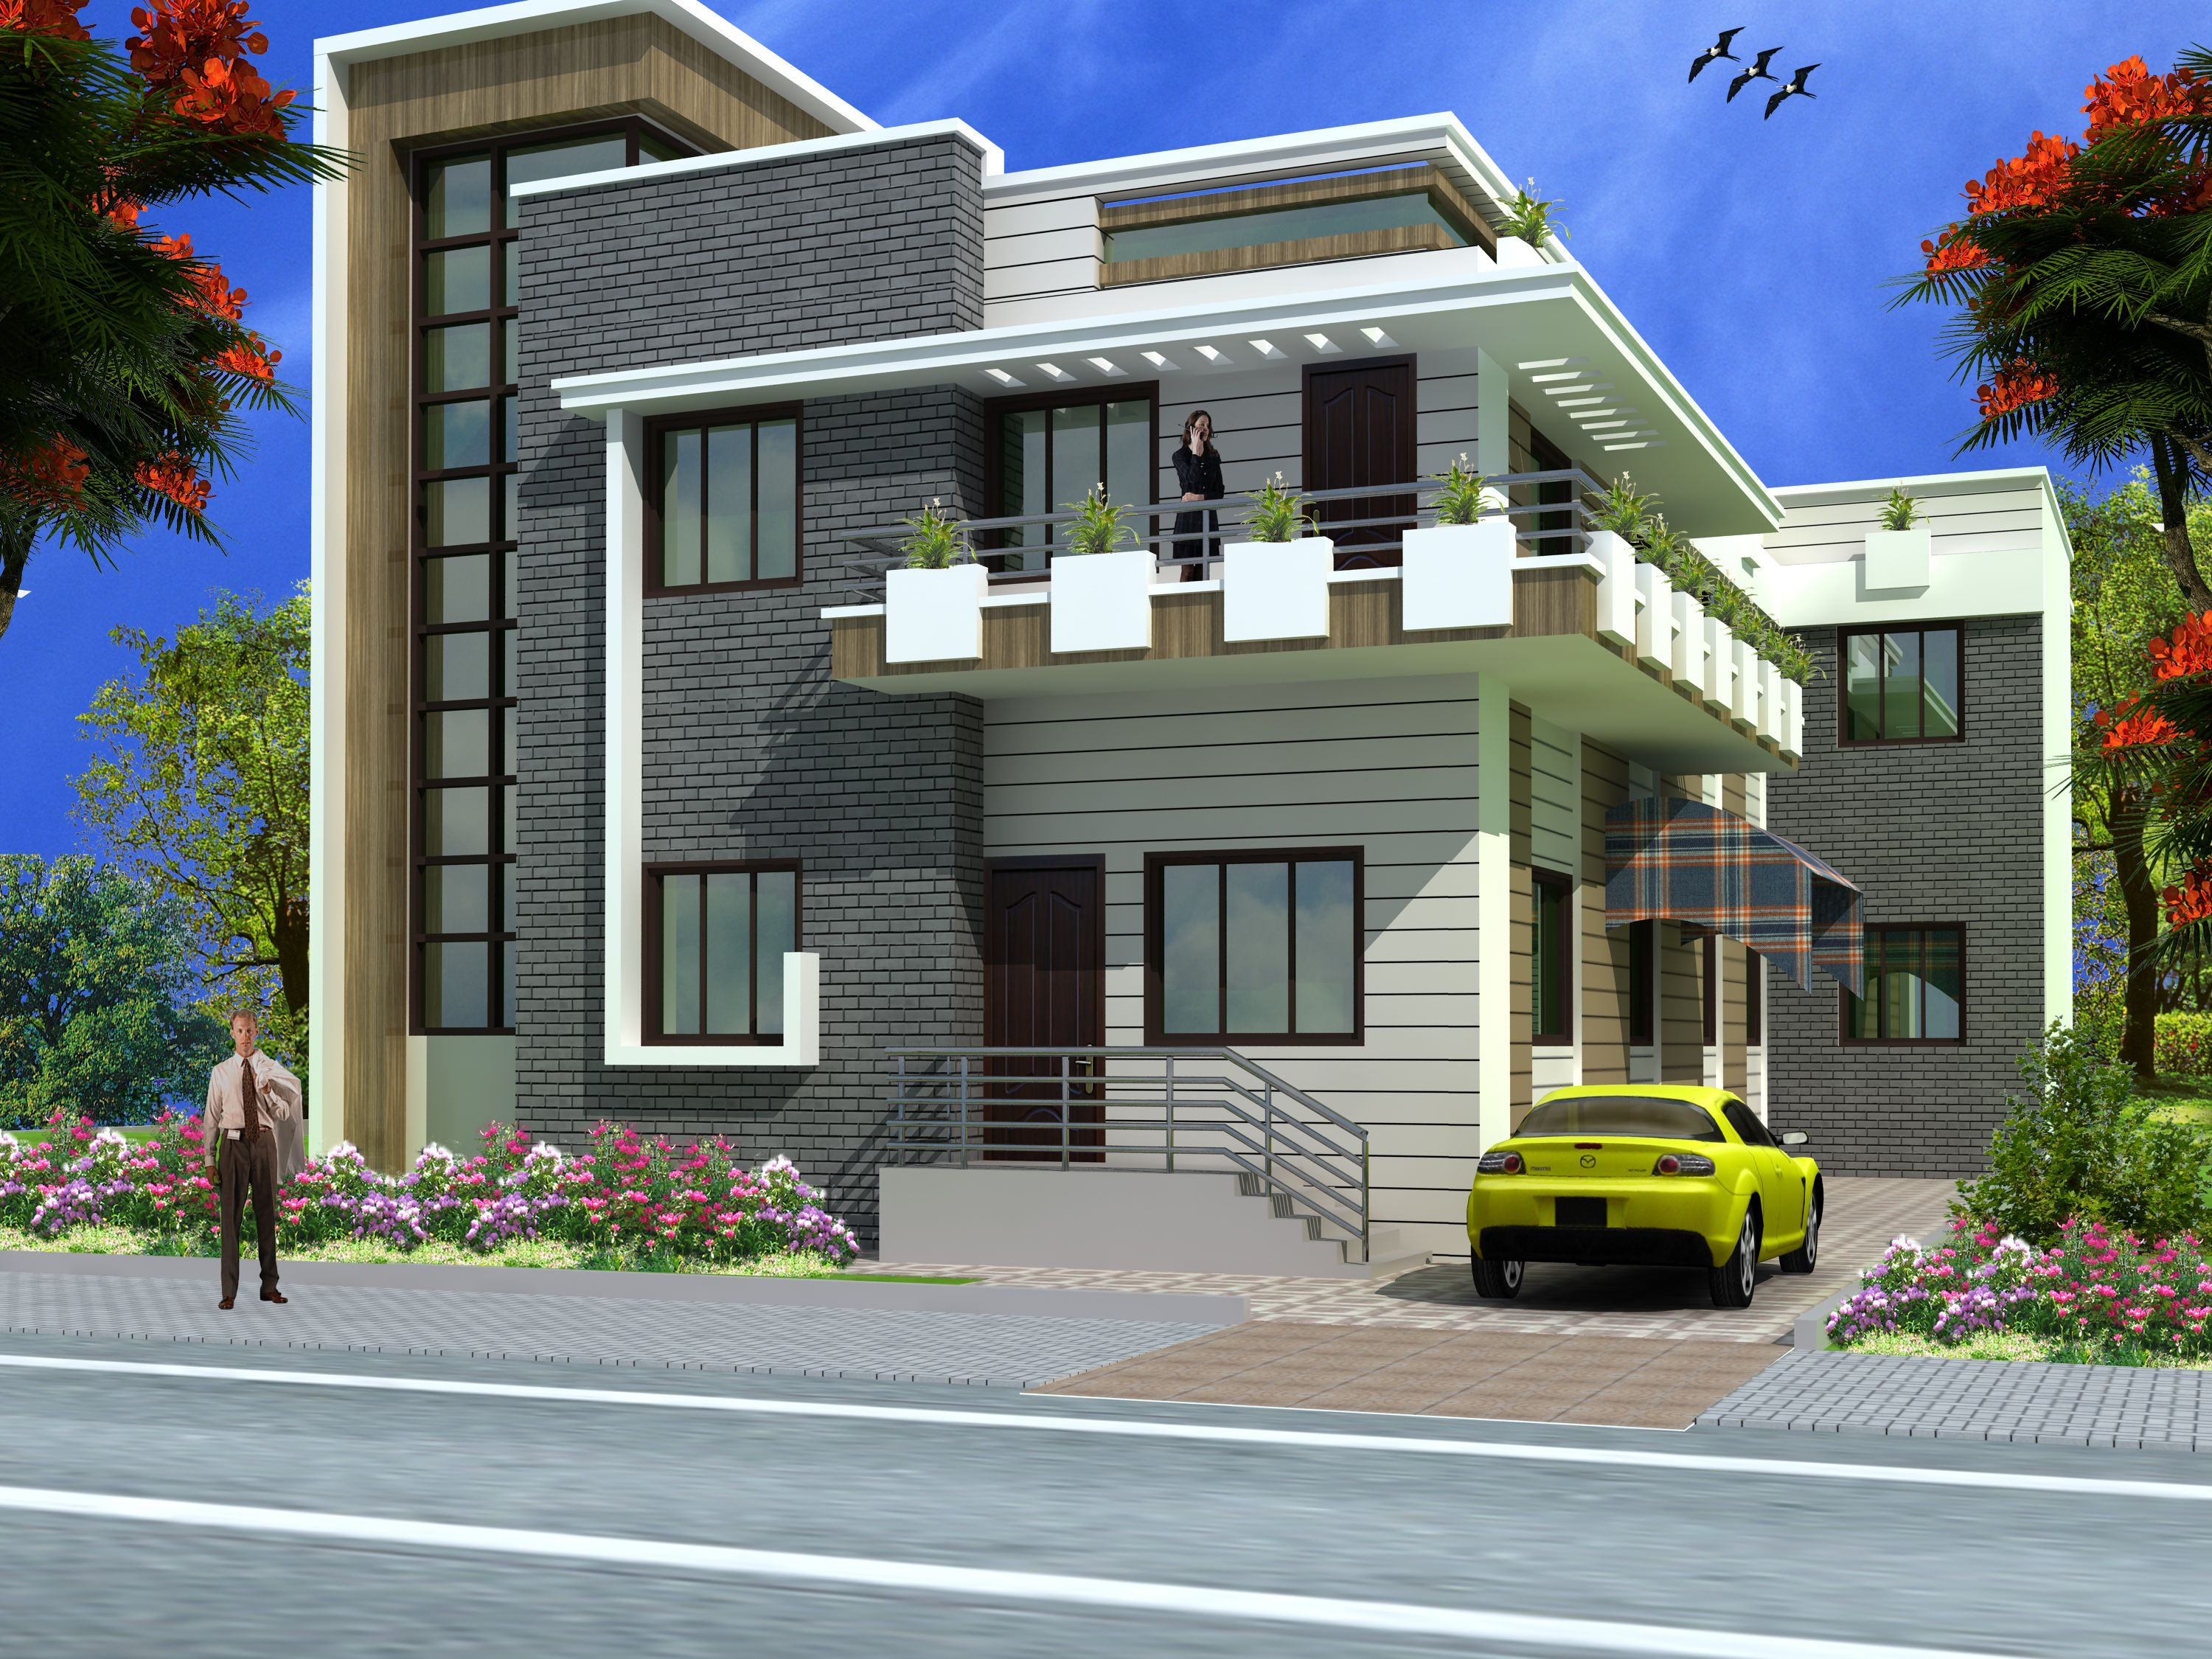 Modern duplex 2 floor house design click on this link for House elevation photos architecture